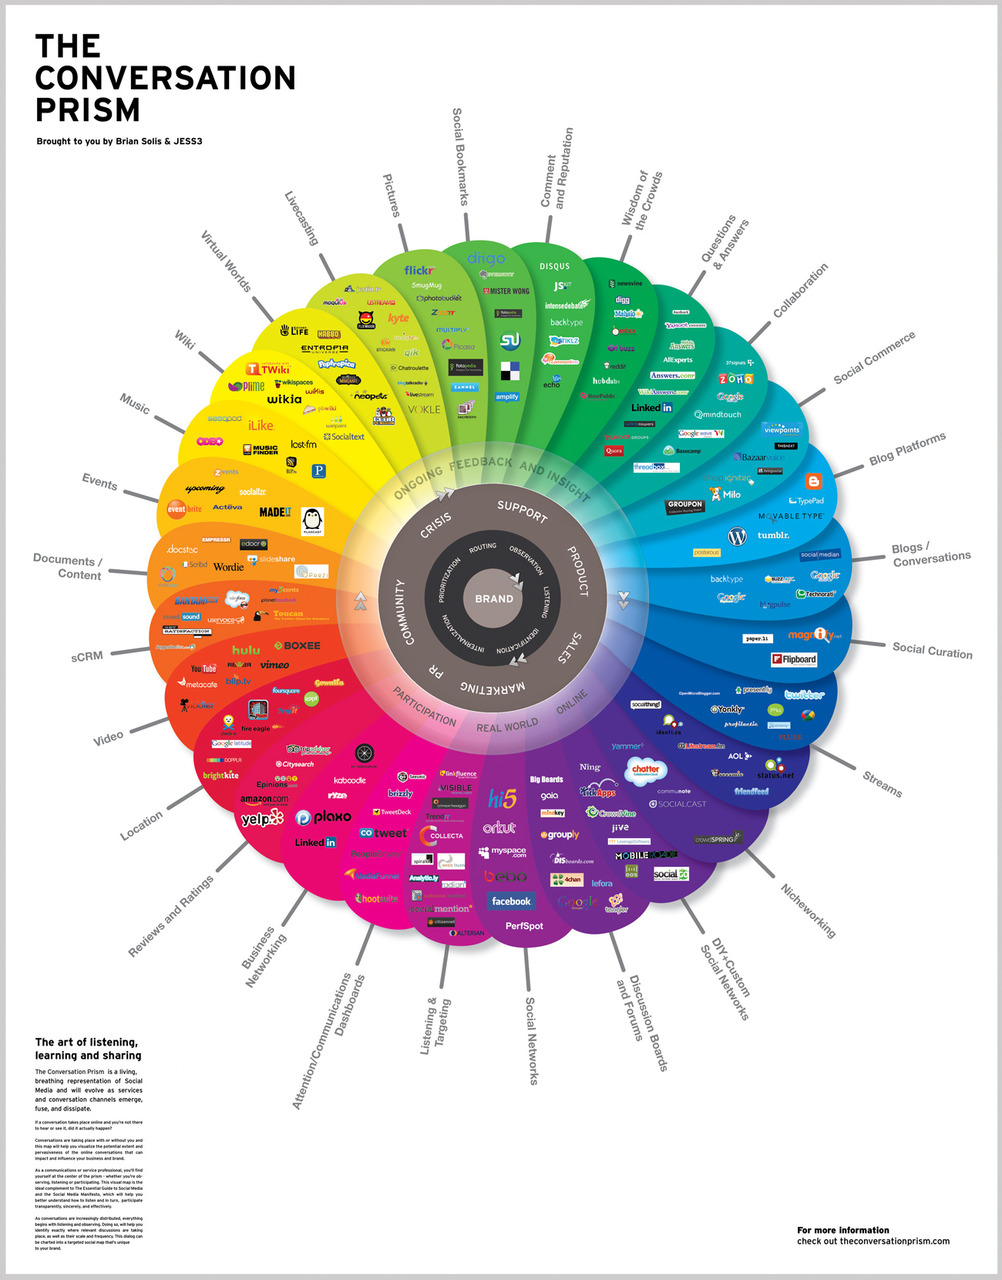 The Conversation Prism. I haven't decided if this is useful or just pretty, but at the very least it functions as a handy Mappa Mundi of the industry…